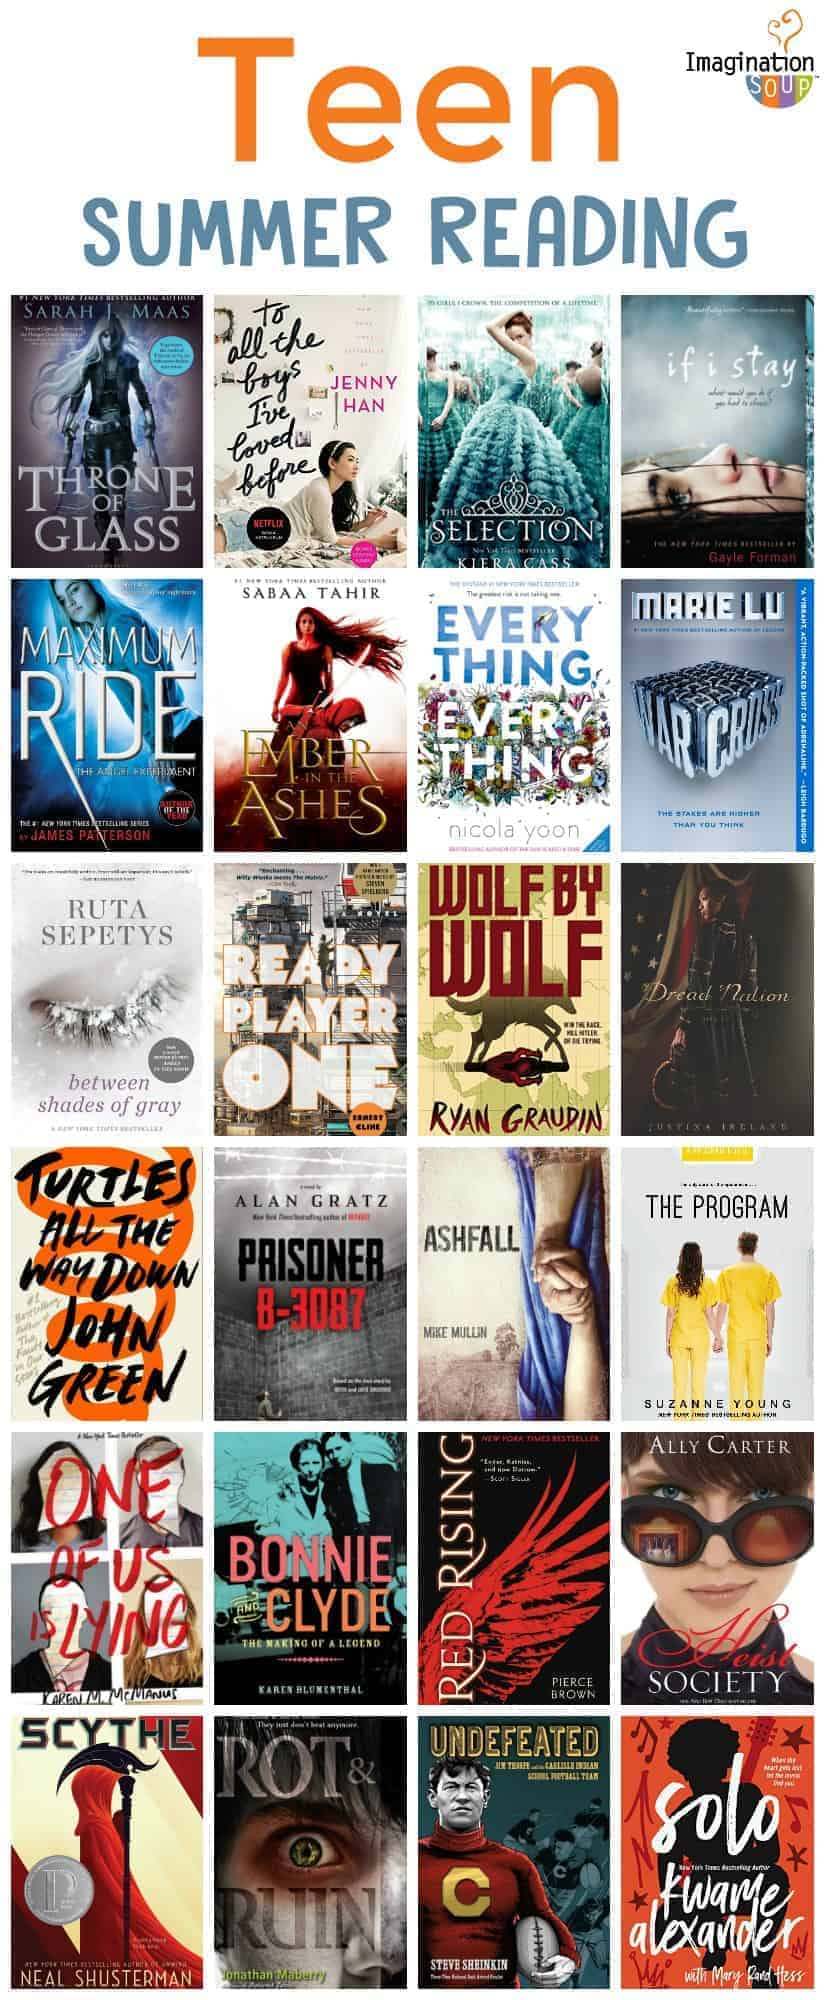 Teen Summer Reading List (Ages 13+)